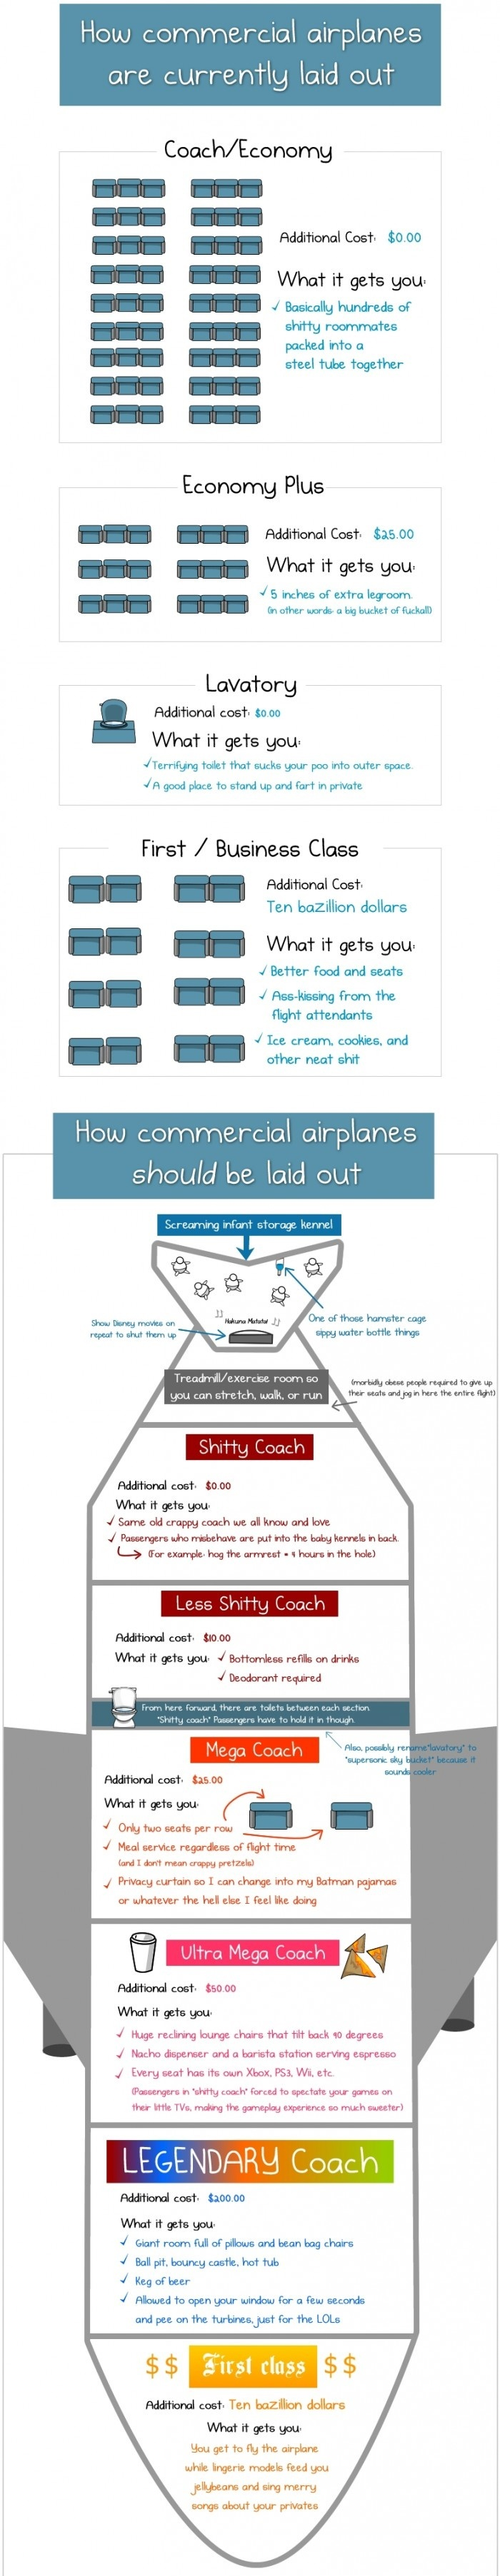 How Commercial Airplanes Are Laid Out